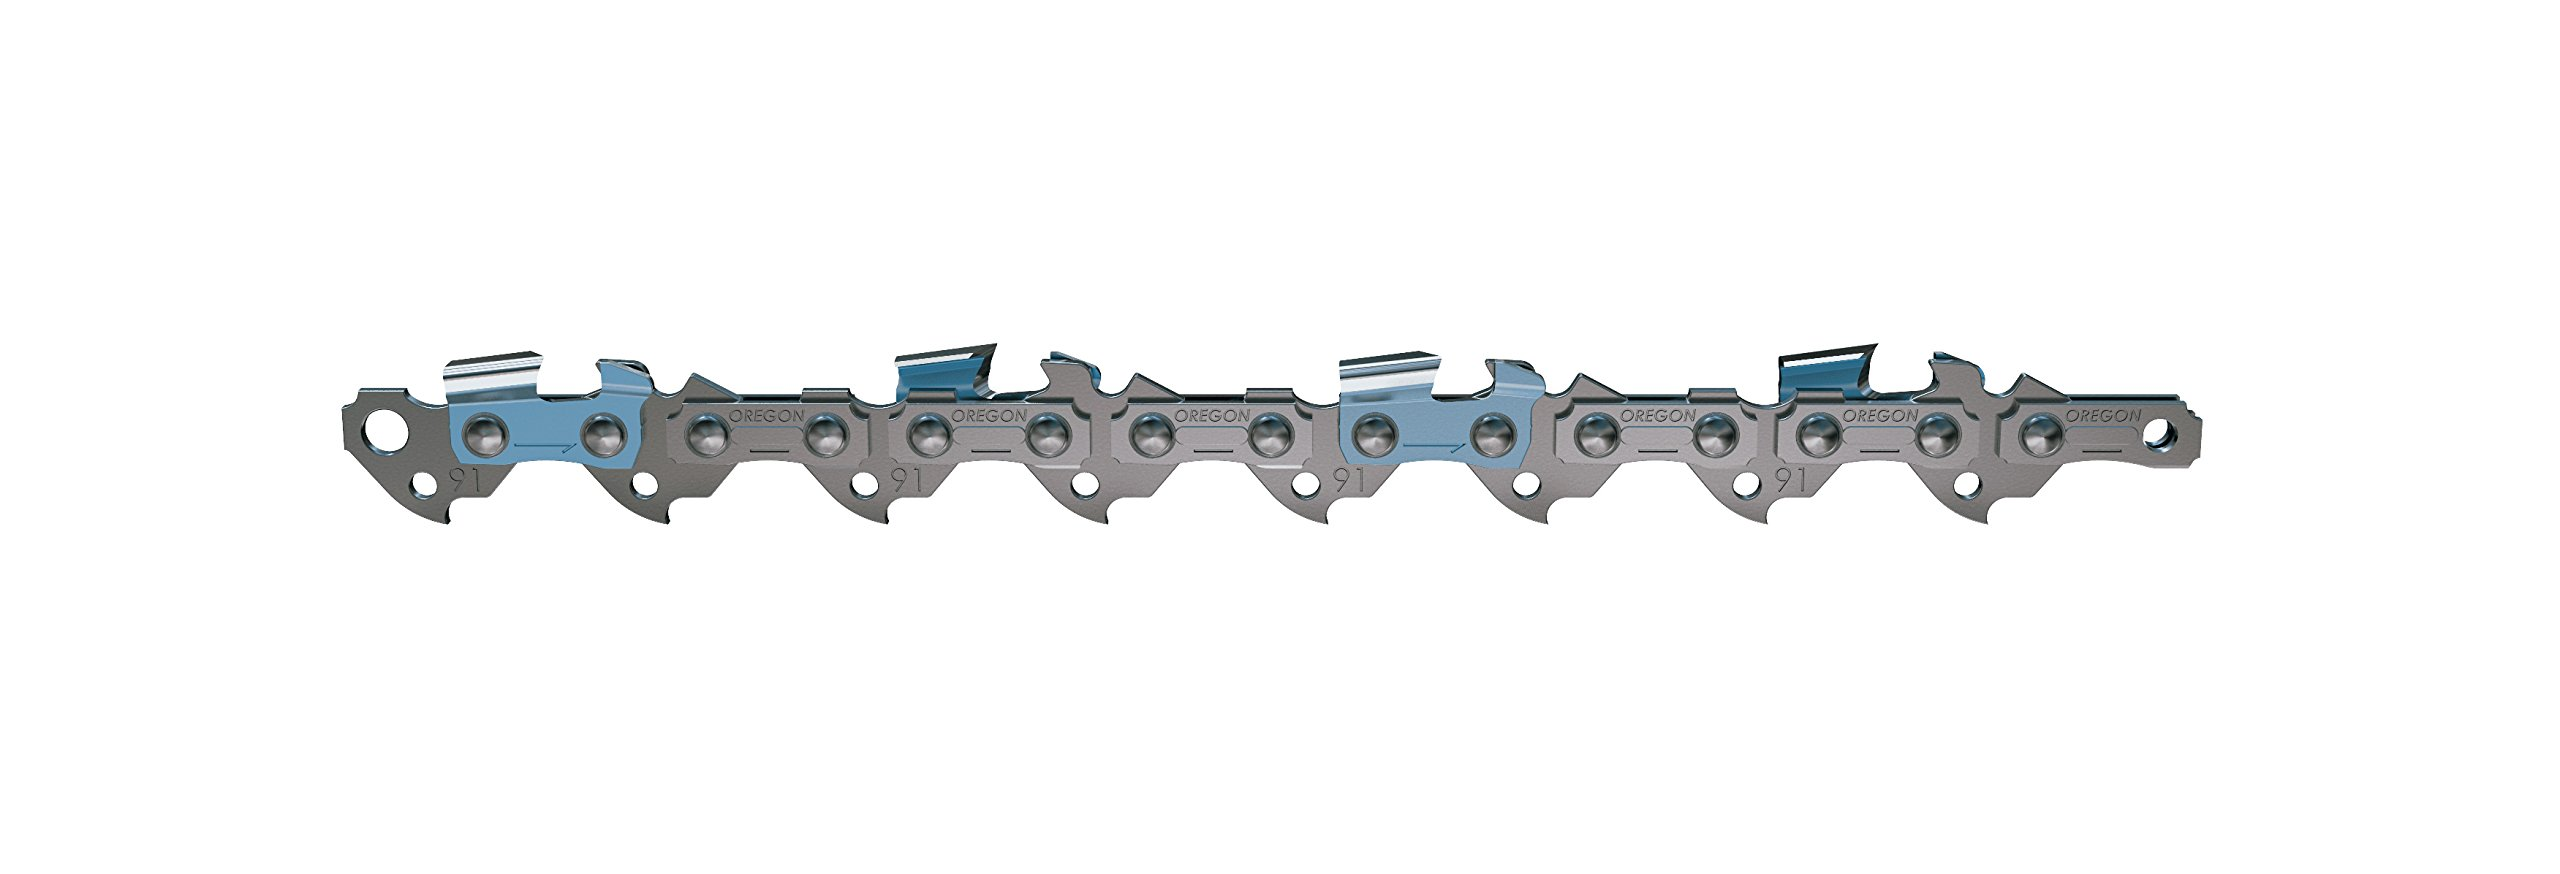 Oregon 91PXL055G 55 Drive Link, Semi-Chisel, 3/8'' Low Profile pitch.050 Gauge Saw Chain by Oregon